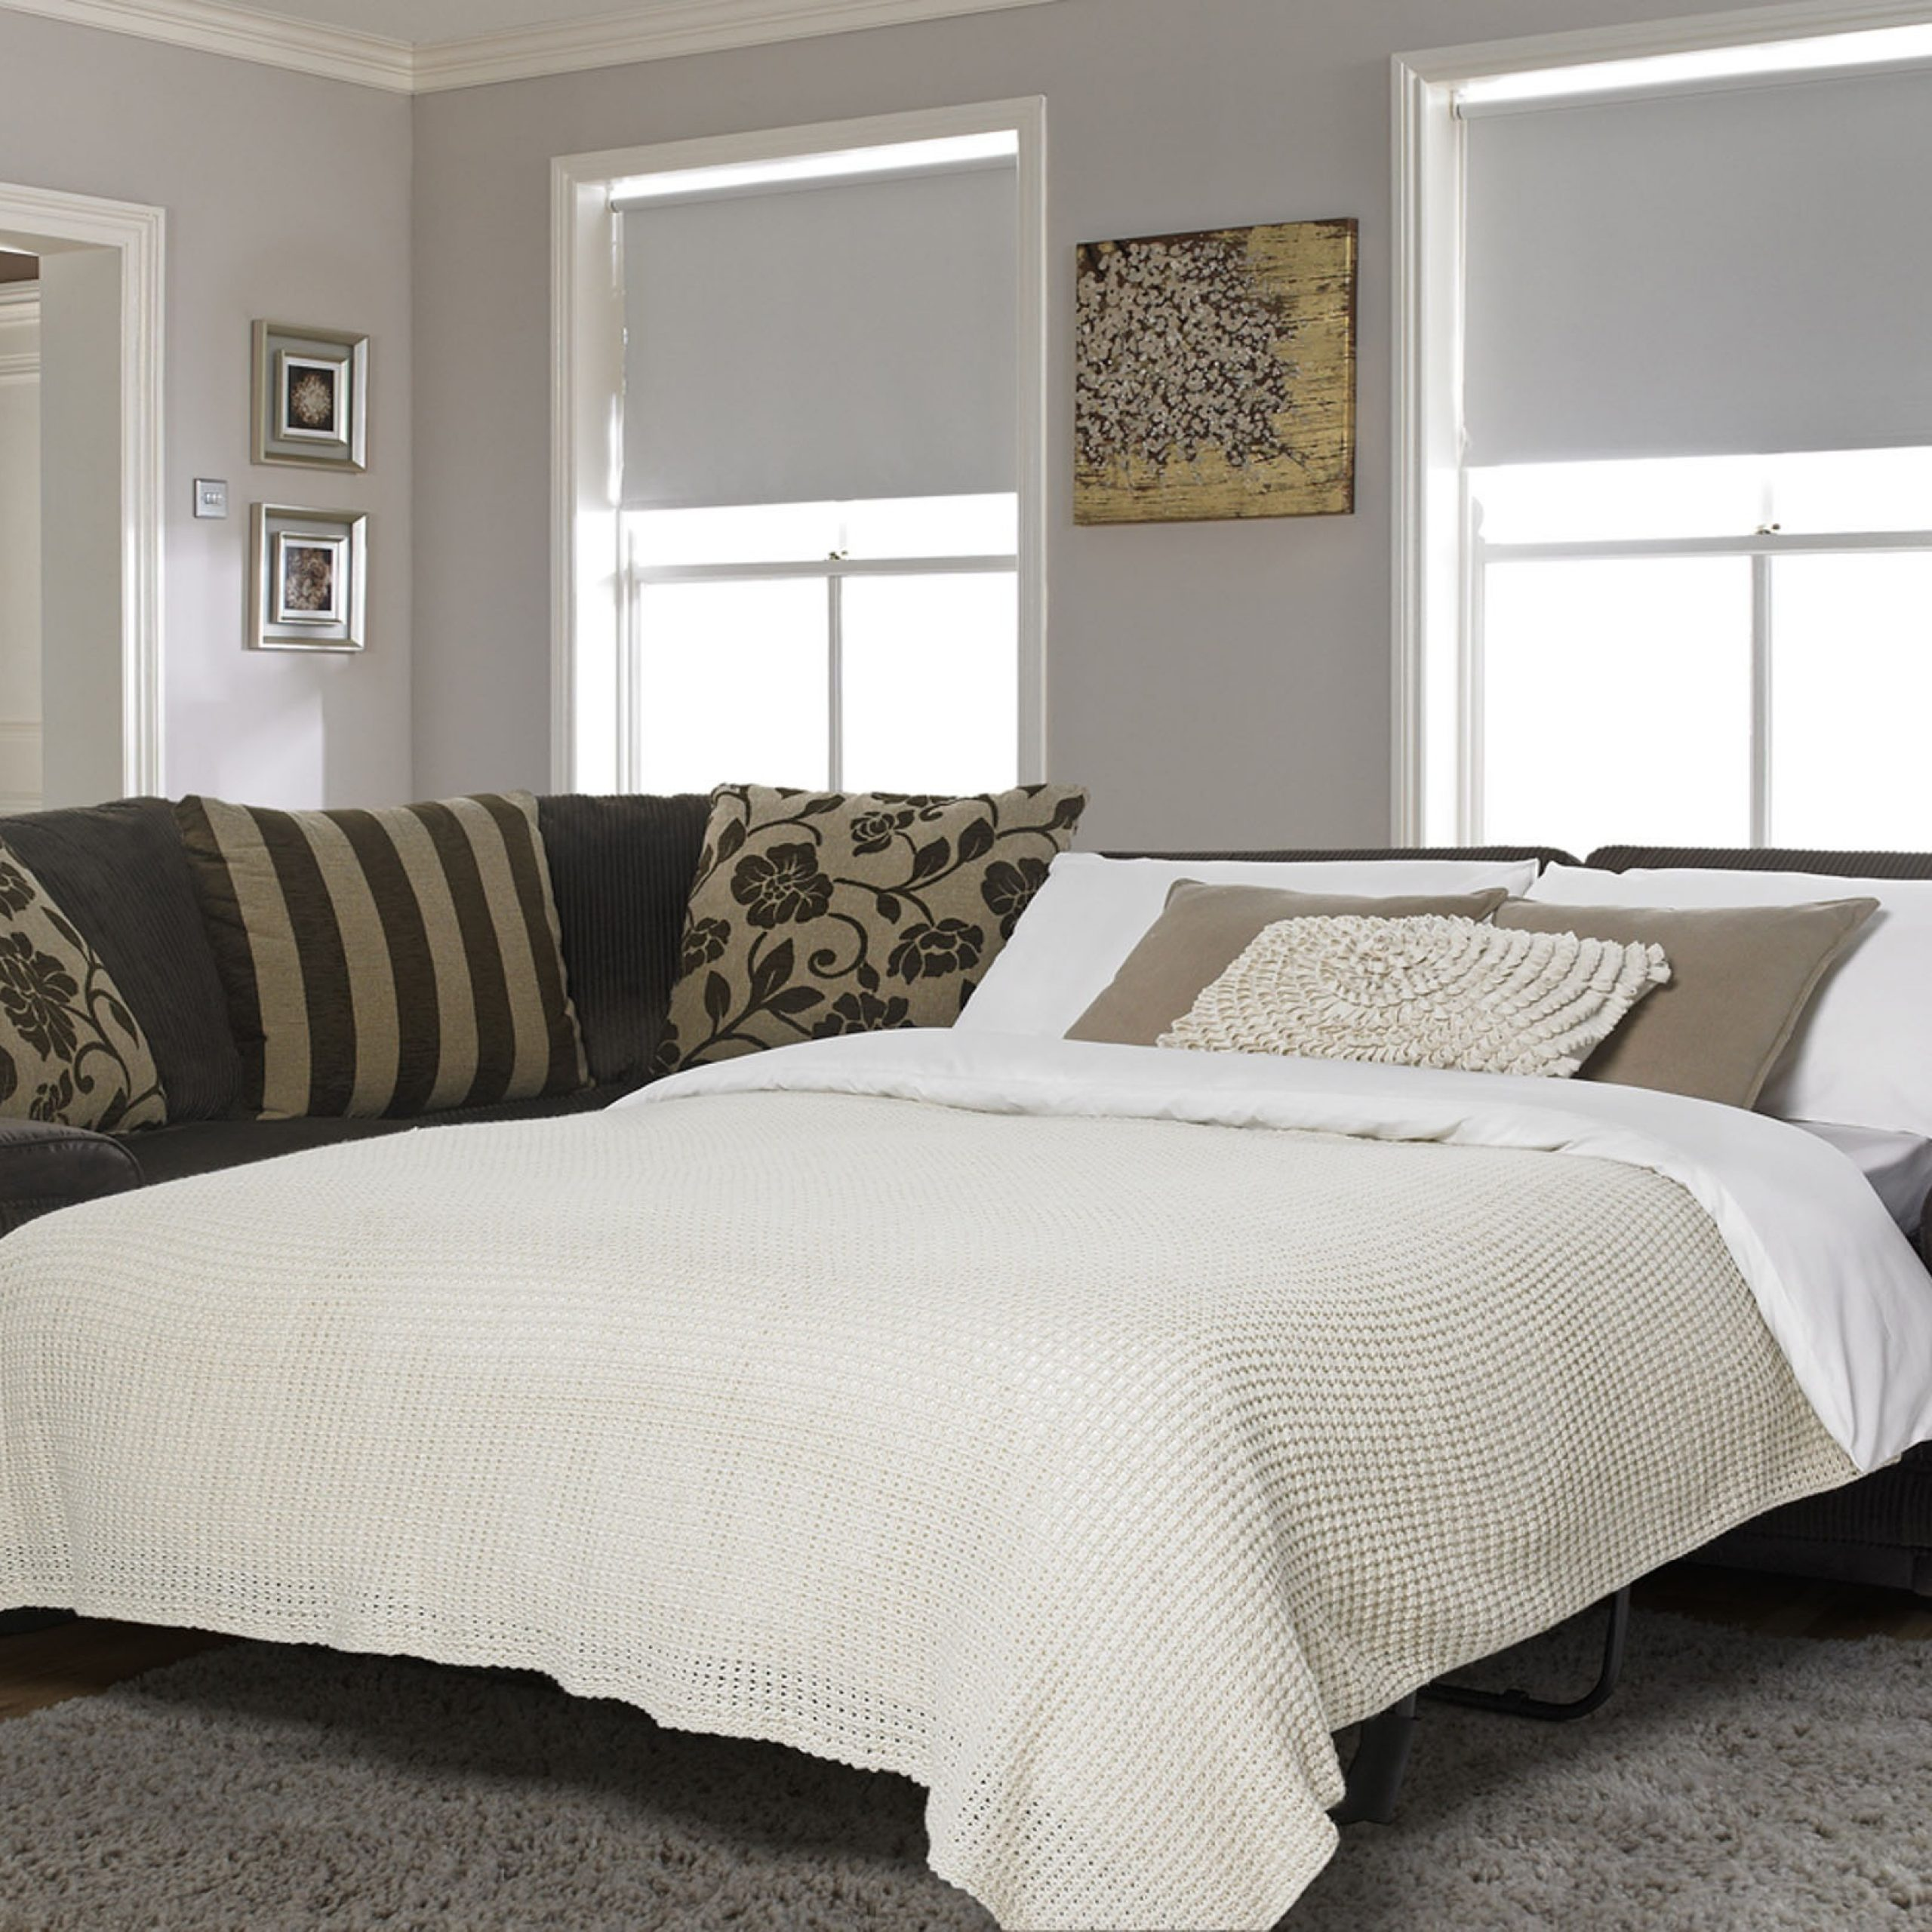 Select The Amazing Bedroom Sofa Designs | Atzine With Sofa Chairs For Bedroom (View 15 of 15)